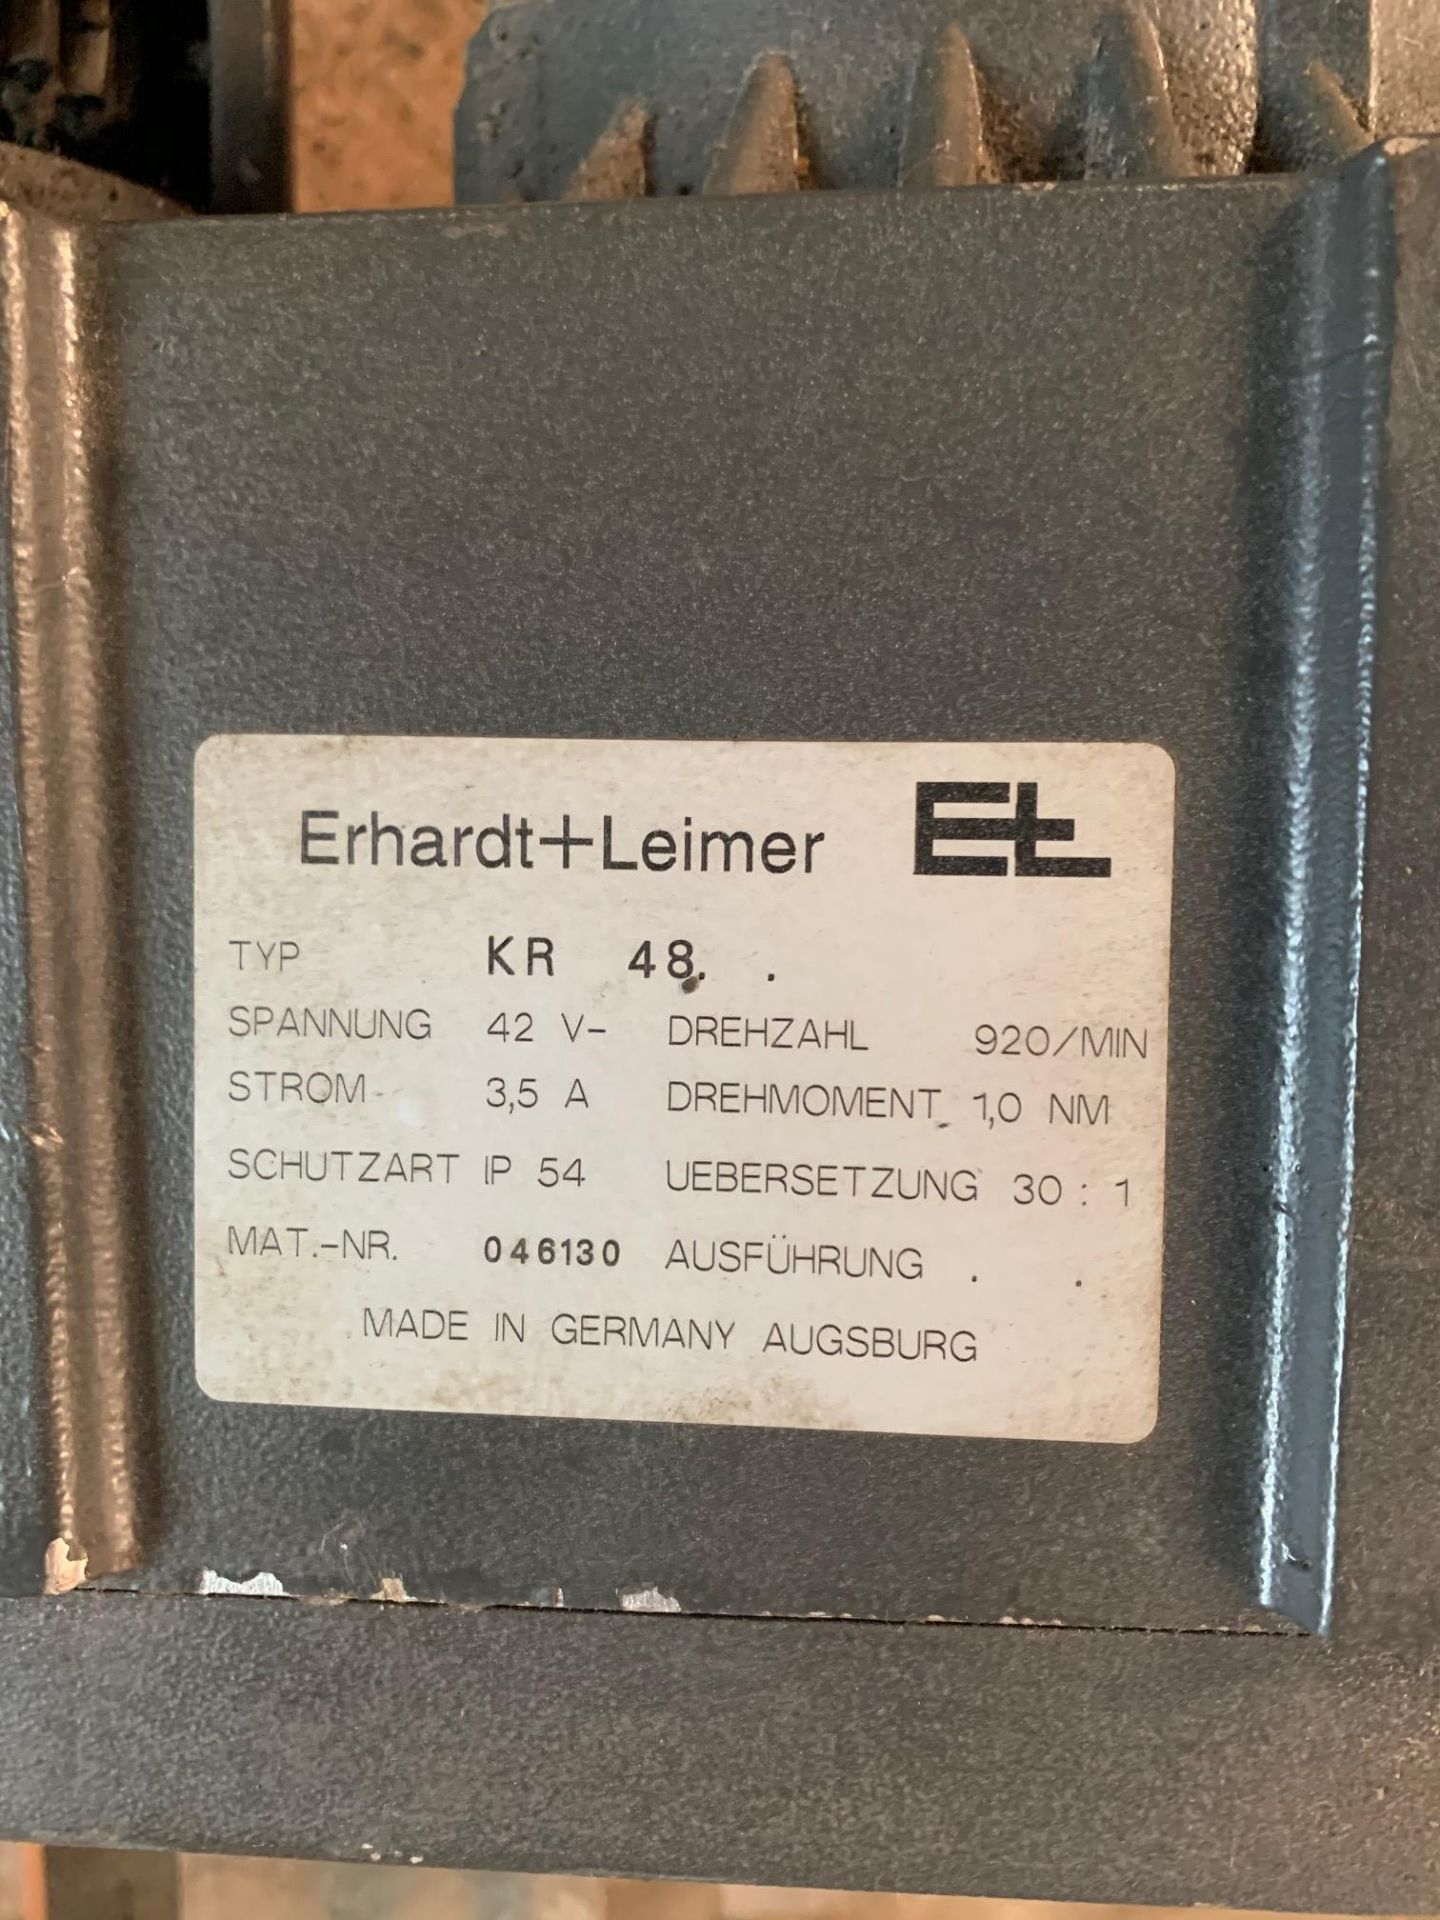 Lot 21220 - Erhardt Leimer KR 48 Motor Guiding Systems 42 Volts / DC 3.5 Amp, Rigging Fee: $25